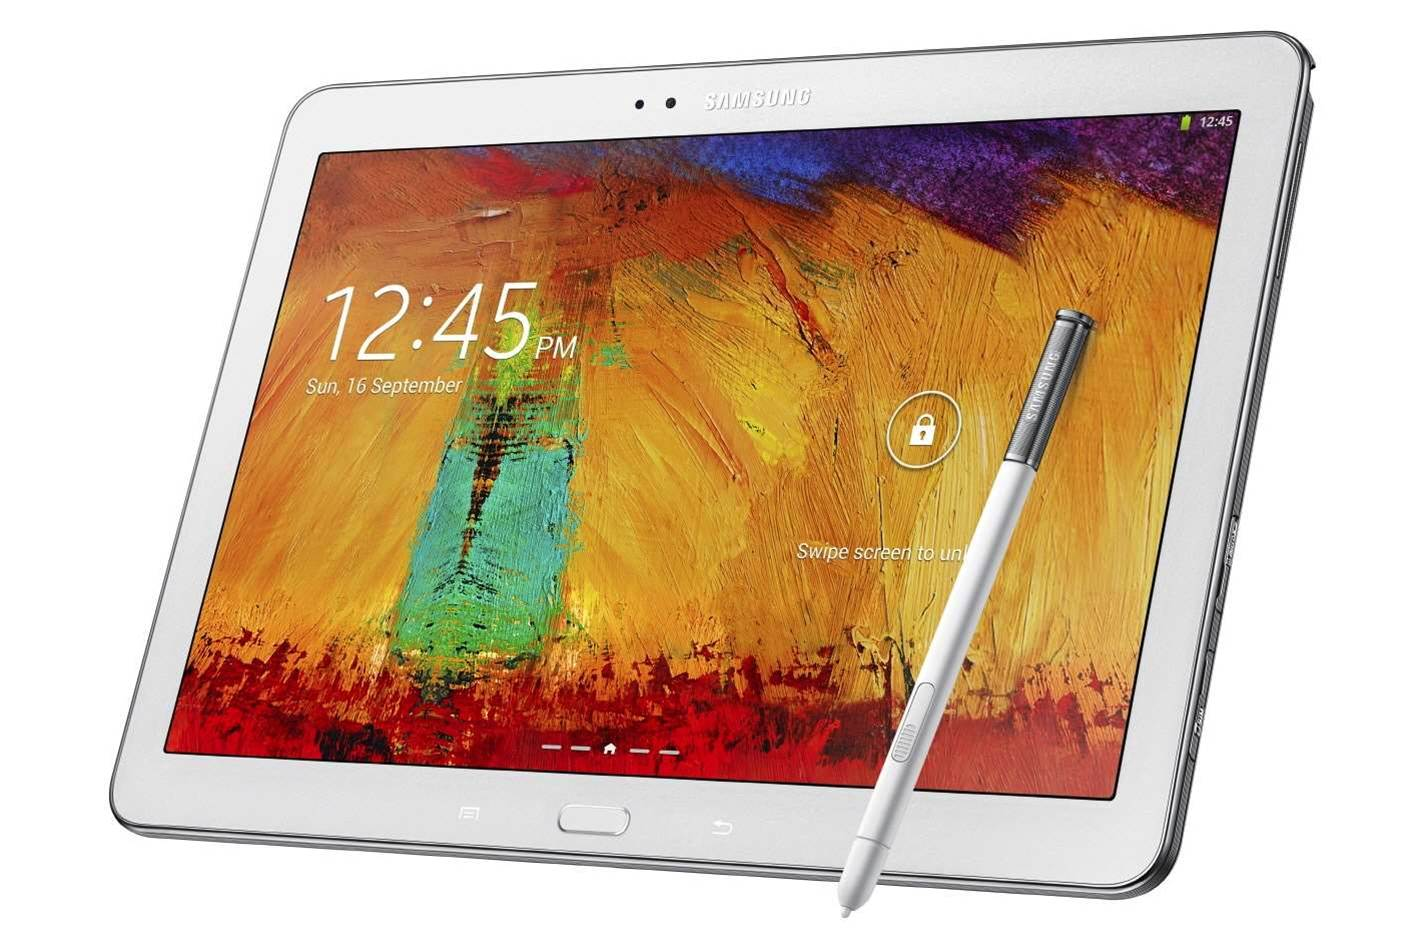 Hands-on preview of the Samsung Galaxy Note 10.1 2014 Edition